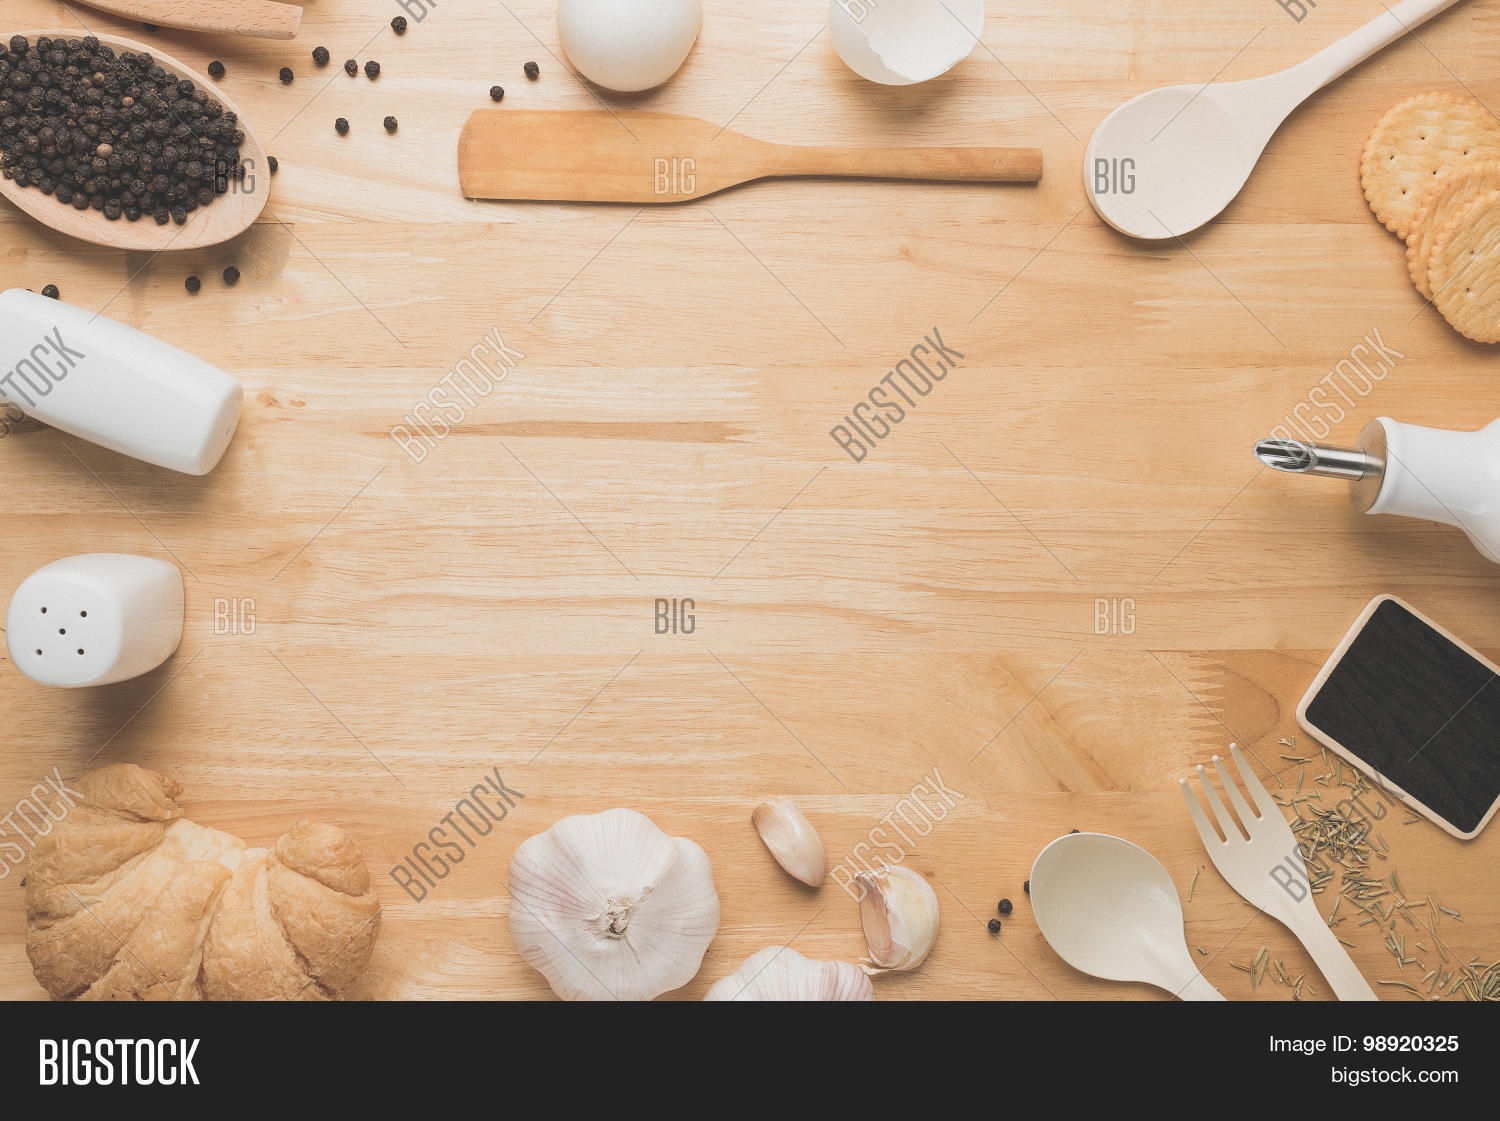 Kitchen table top view - Top View Kitchen Mockup Rural Kitchen Utensils And Ingredients On Wooden Table